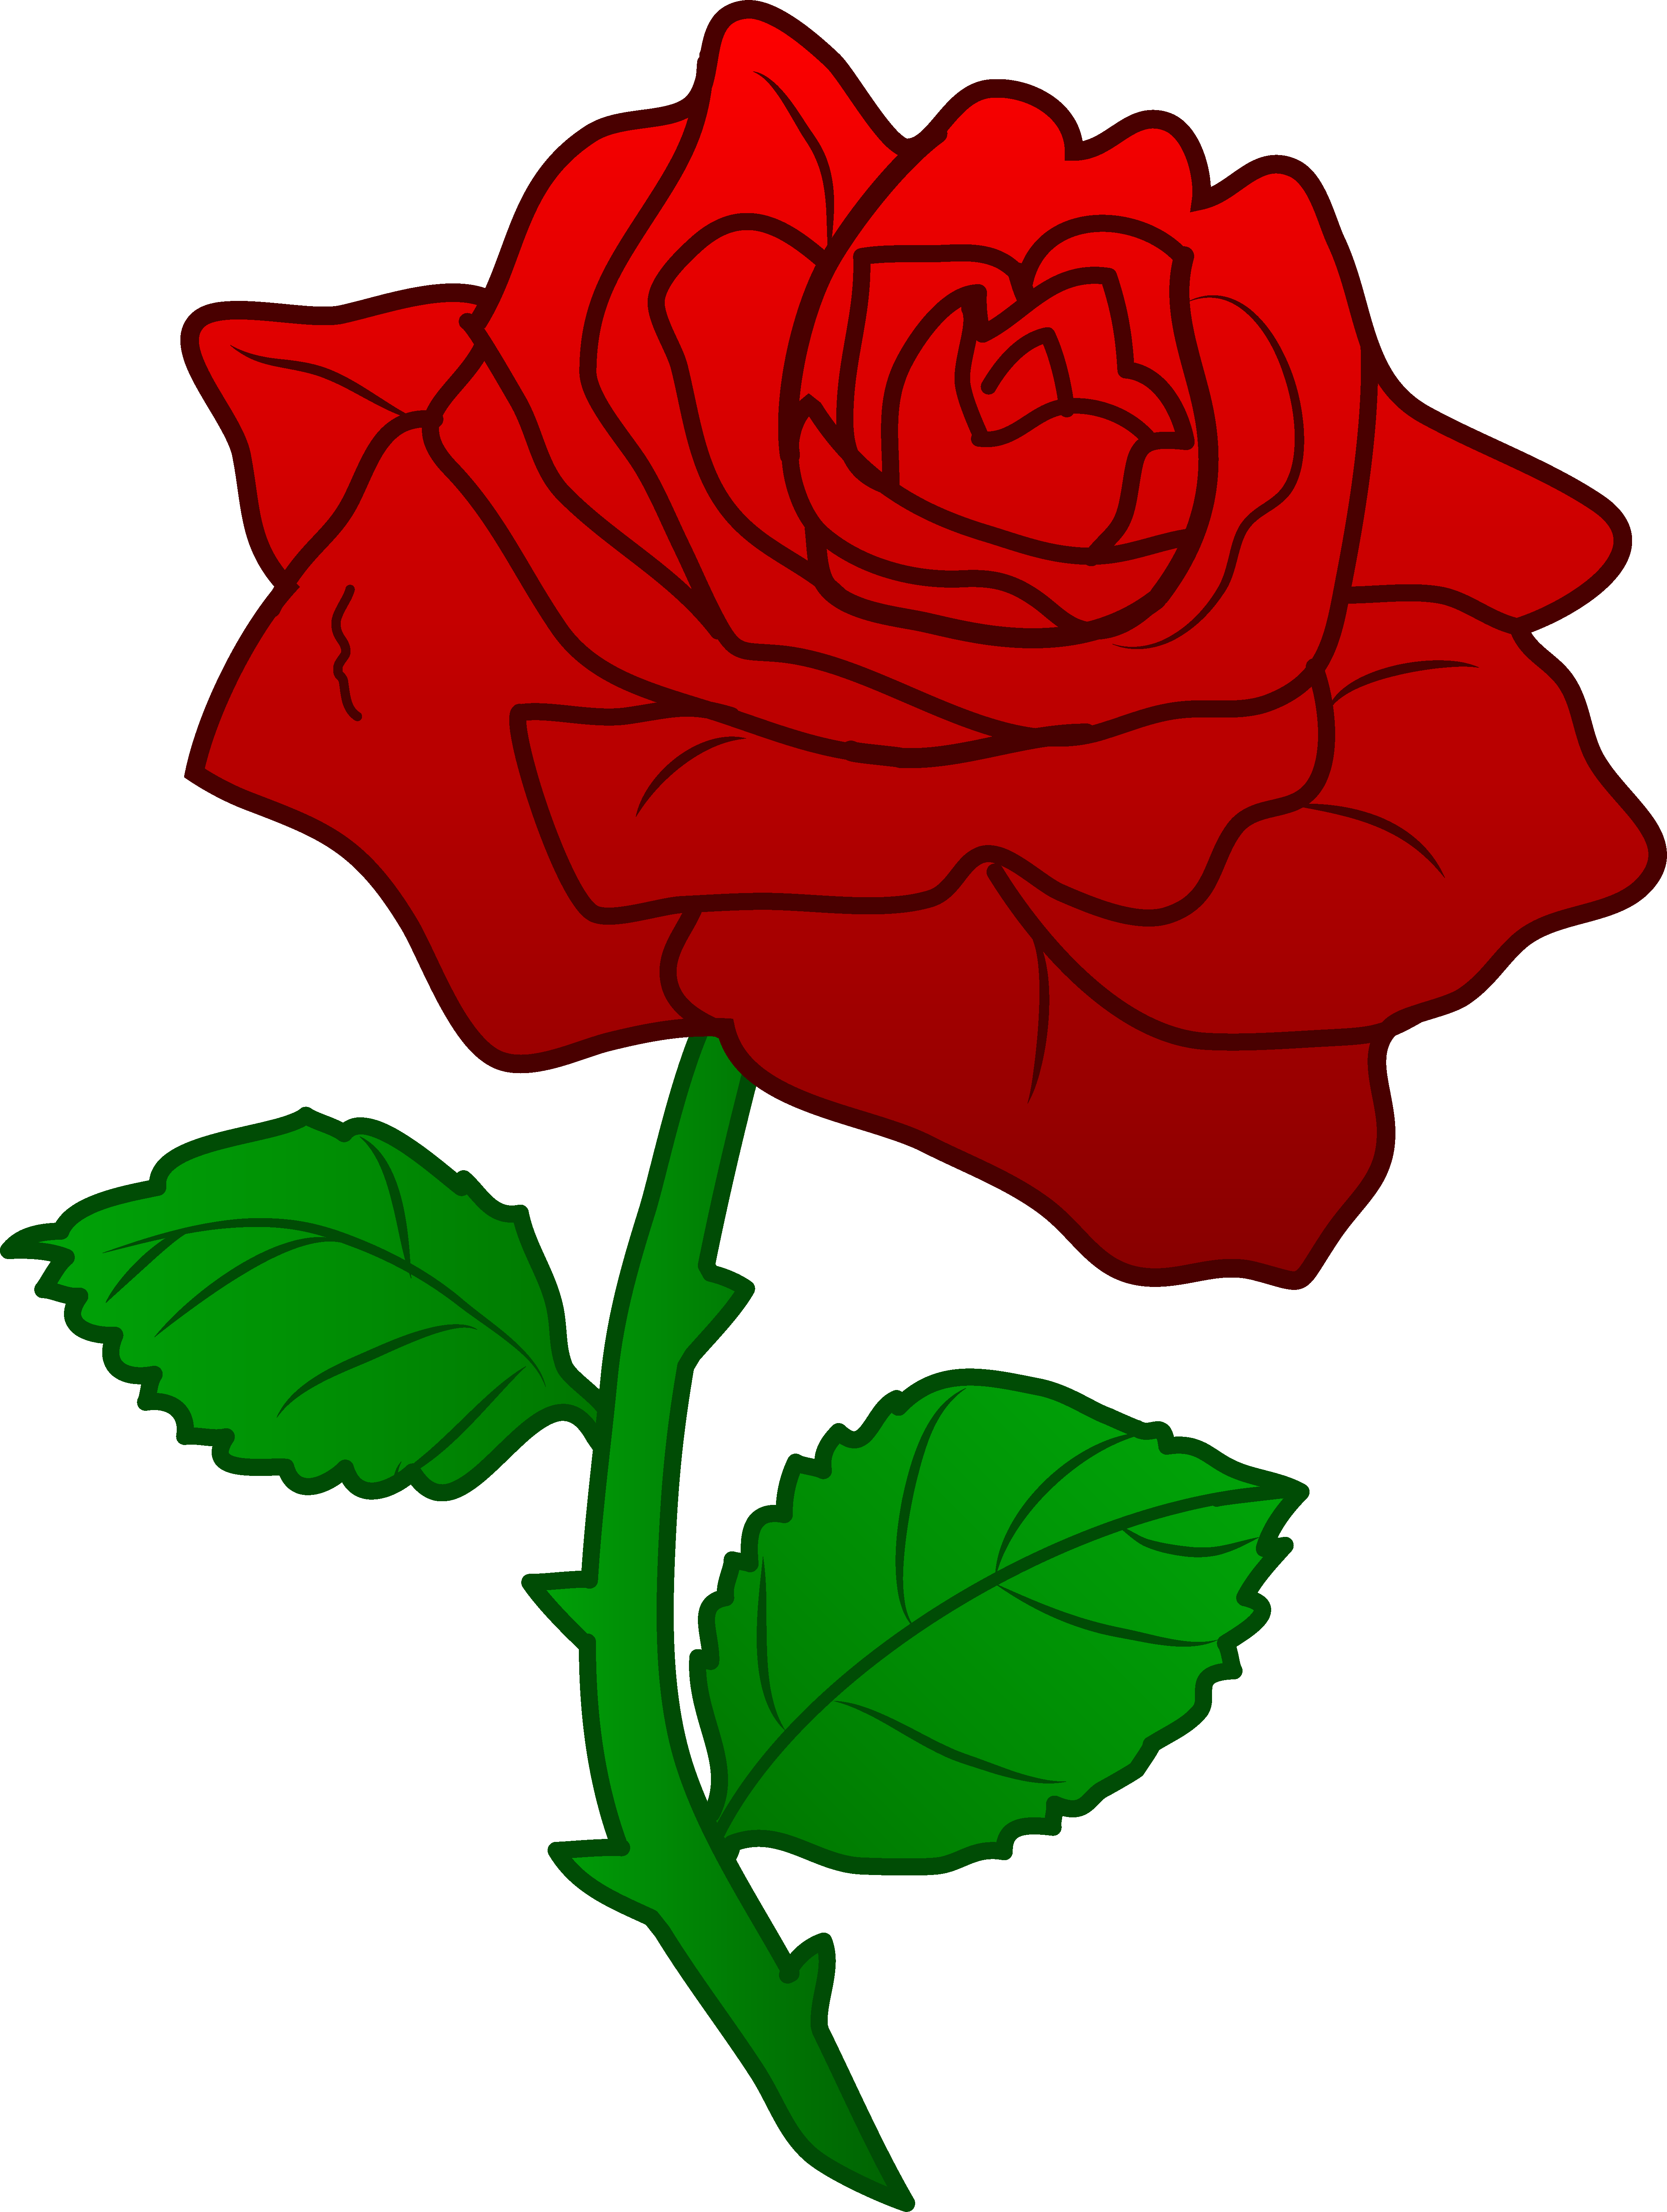 Red Roses Clipart.